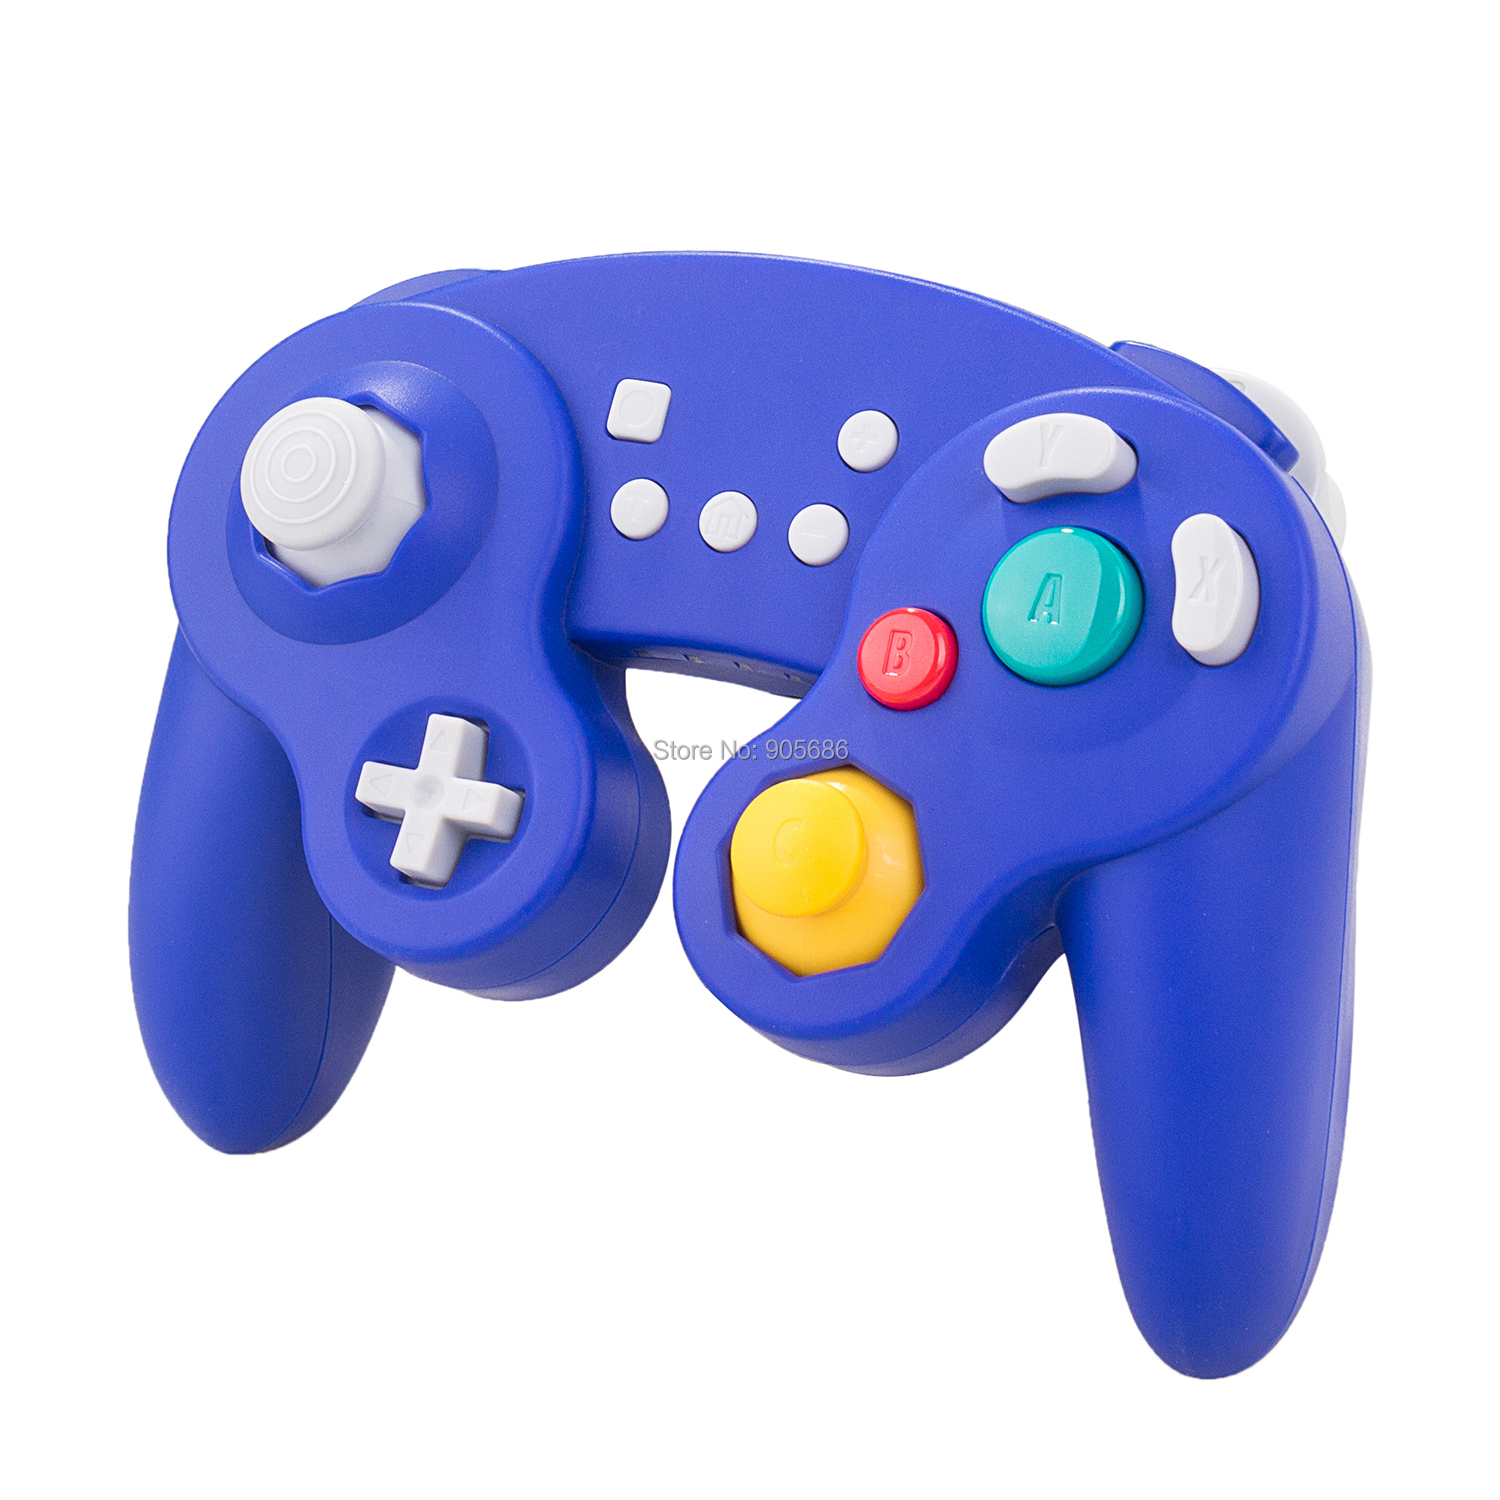 EXLENE Gamecube-Controller Switch Bluetooth Nintendo Wireless Rechargeable for Rumble/turbo title=